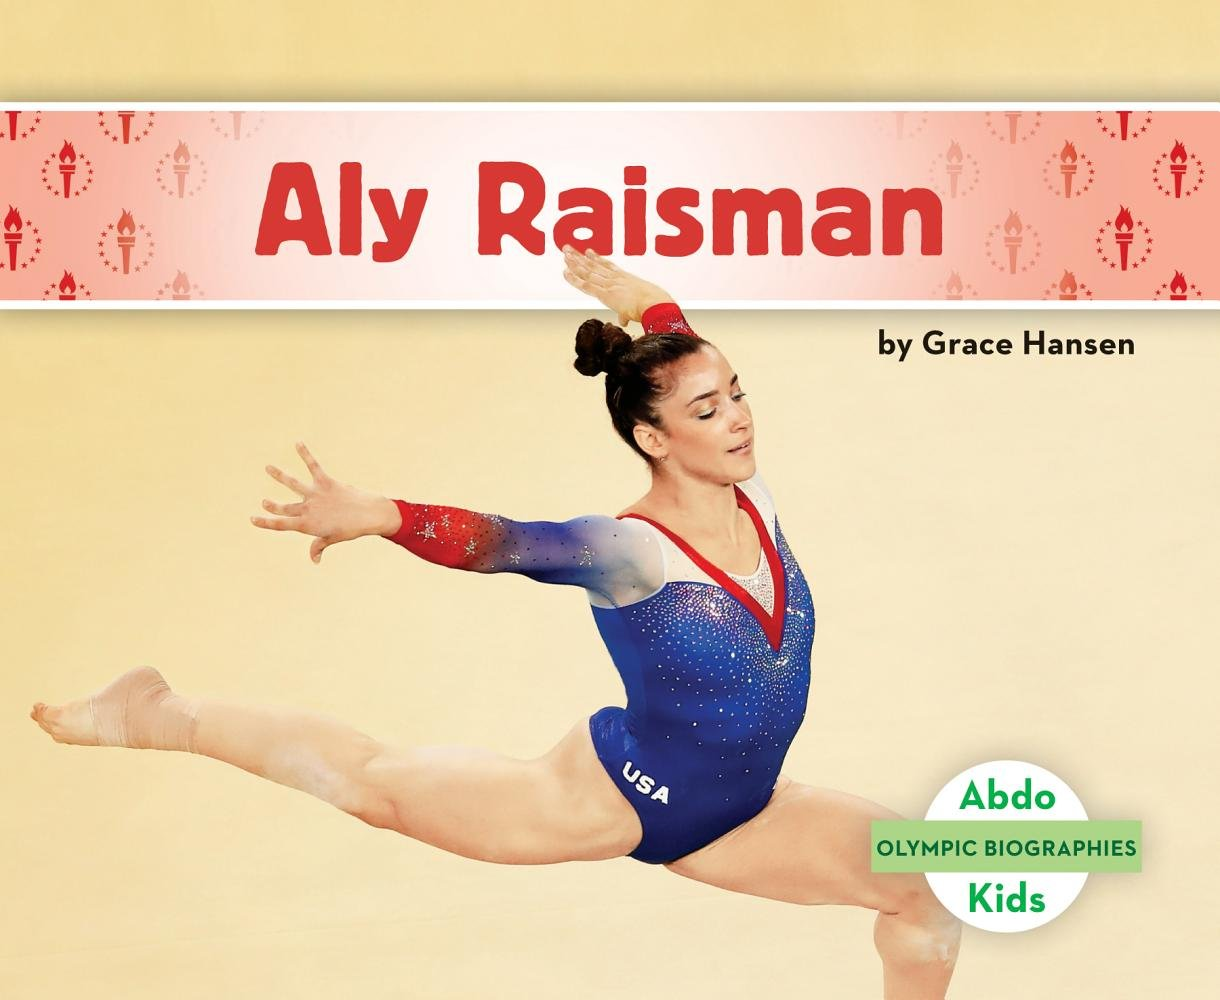 Aly Raisman (Olympic Biographies)